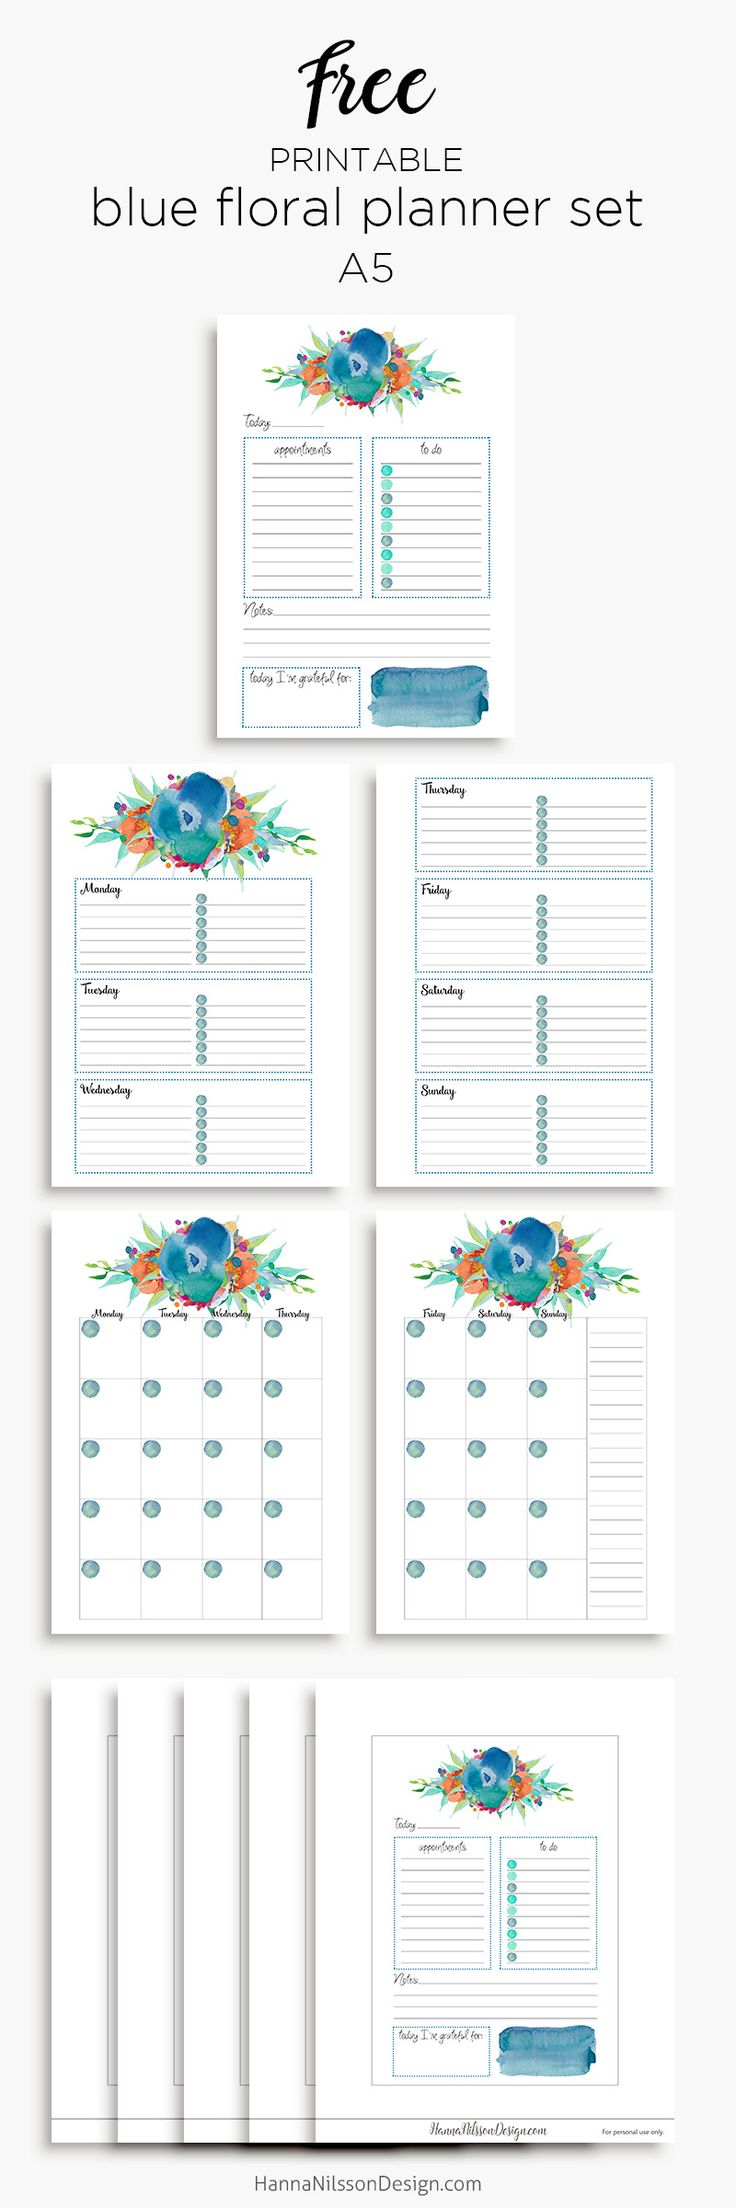 Free Printable Blue Floral Planner Calendar Inserts | A5 and Personal Size | Hanna Nilsson Design {newsletter subscription required}